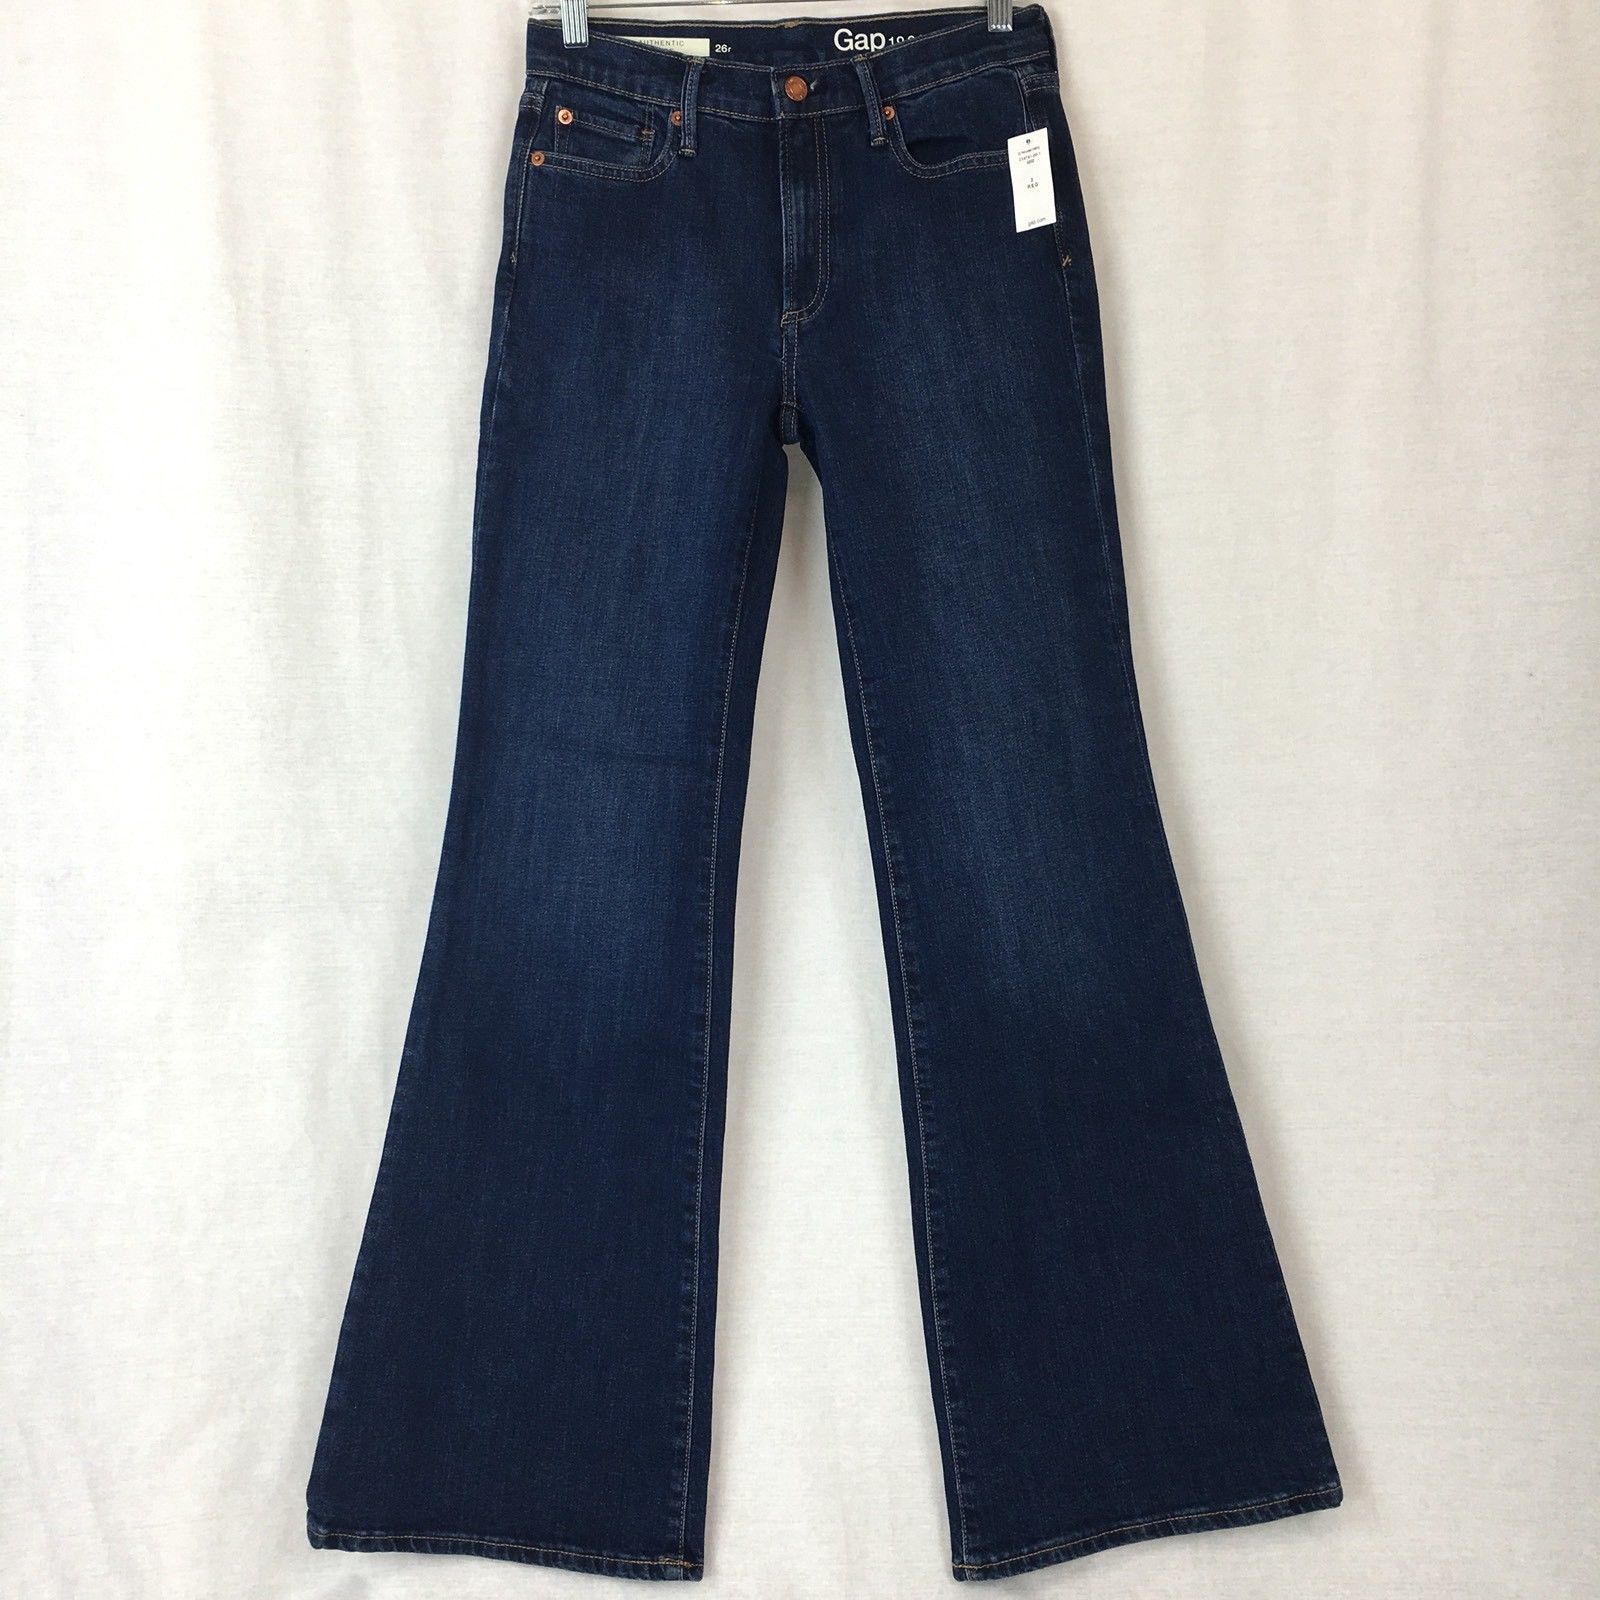 Gap Womens Jeans Authentic Flare Stone Blue Cotton Stretch Size 2Rx32